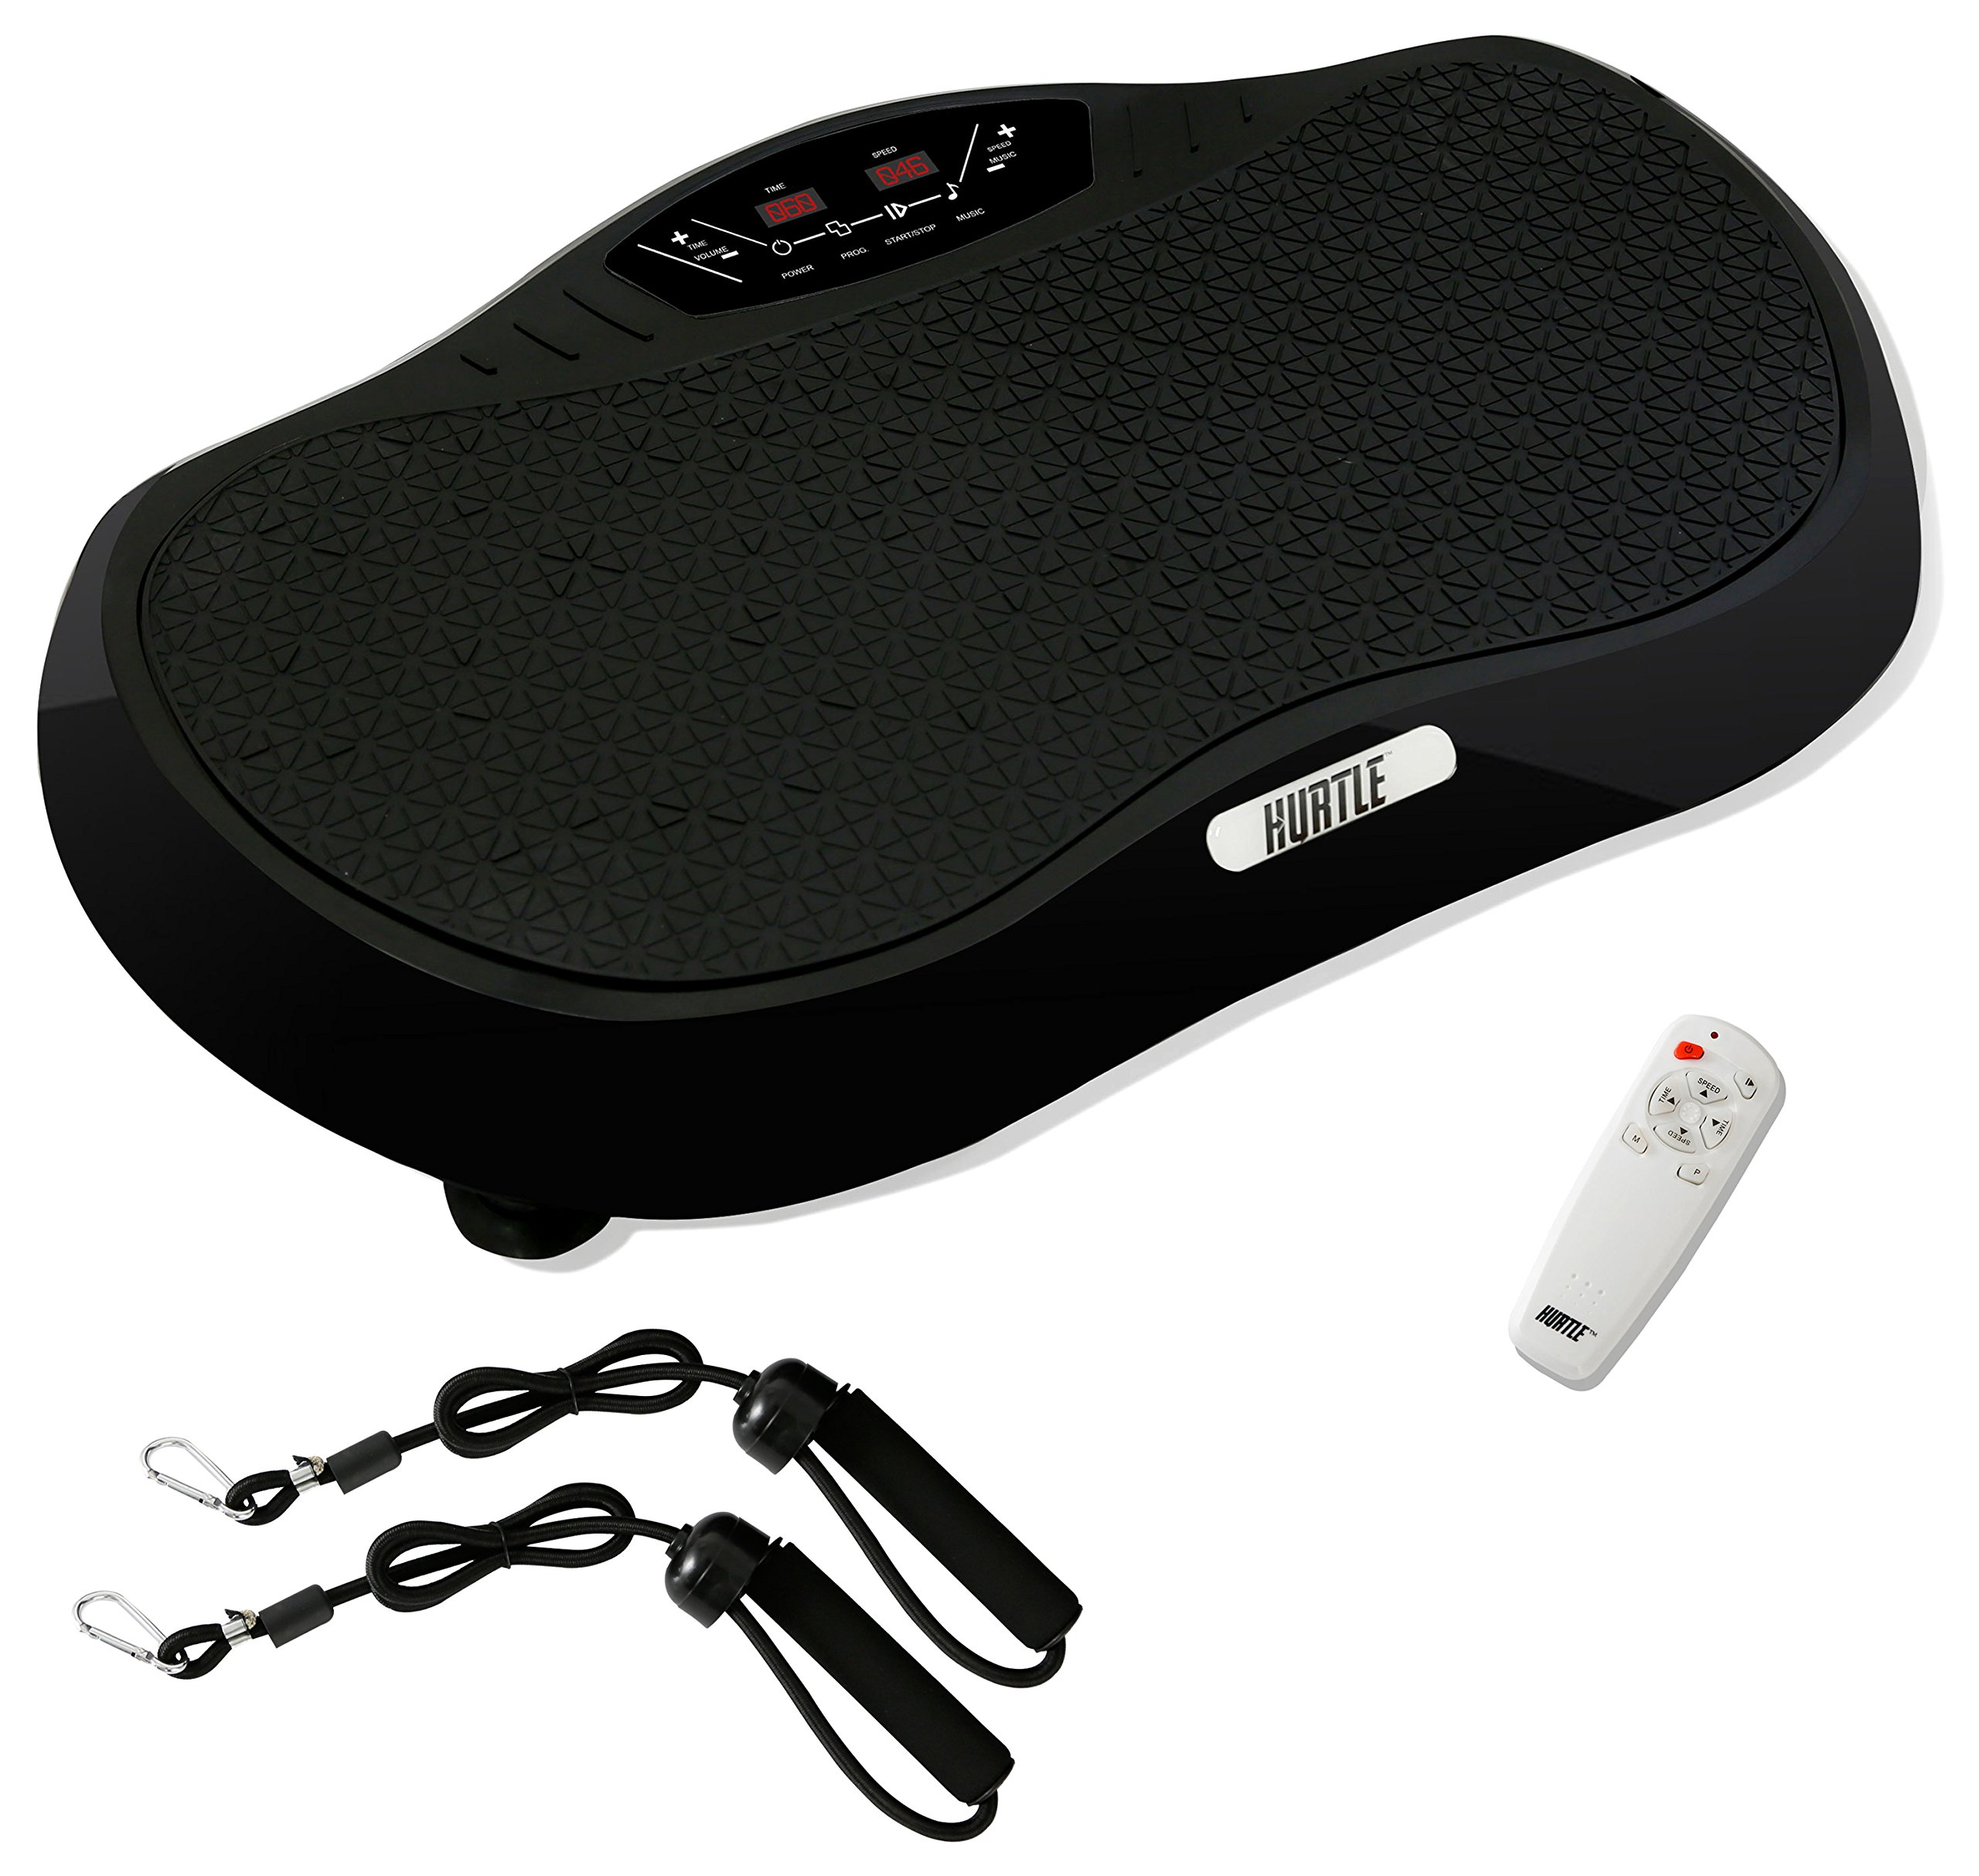 Hurtle Crazy Fit Vibration Fitness Machine - Anti-Slip Vibrating Platform Exercise & Workout Trainer, with Built-in Bluetooth Speakers, Ideal for All Body Types & Age Groups. (HURVBTR35BT)